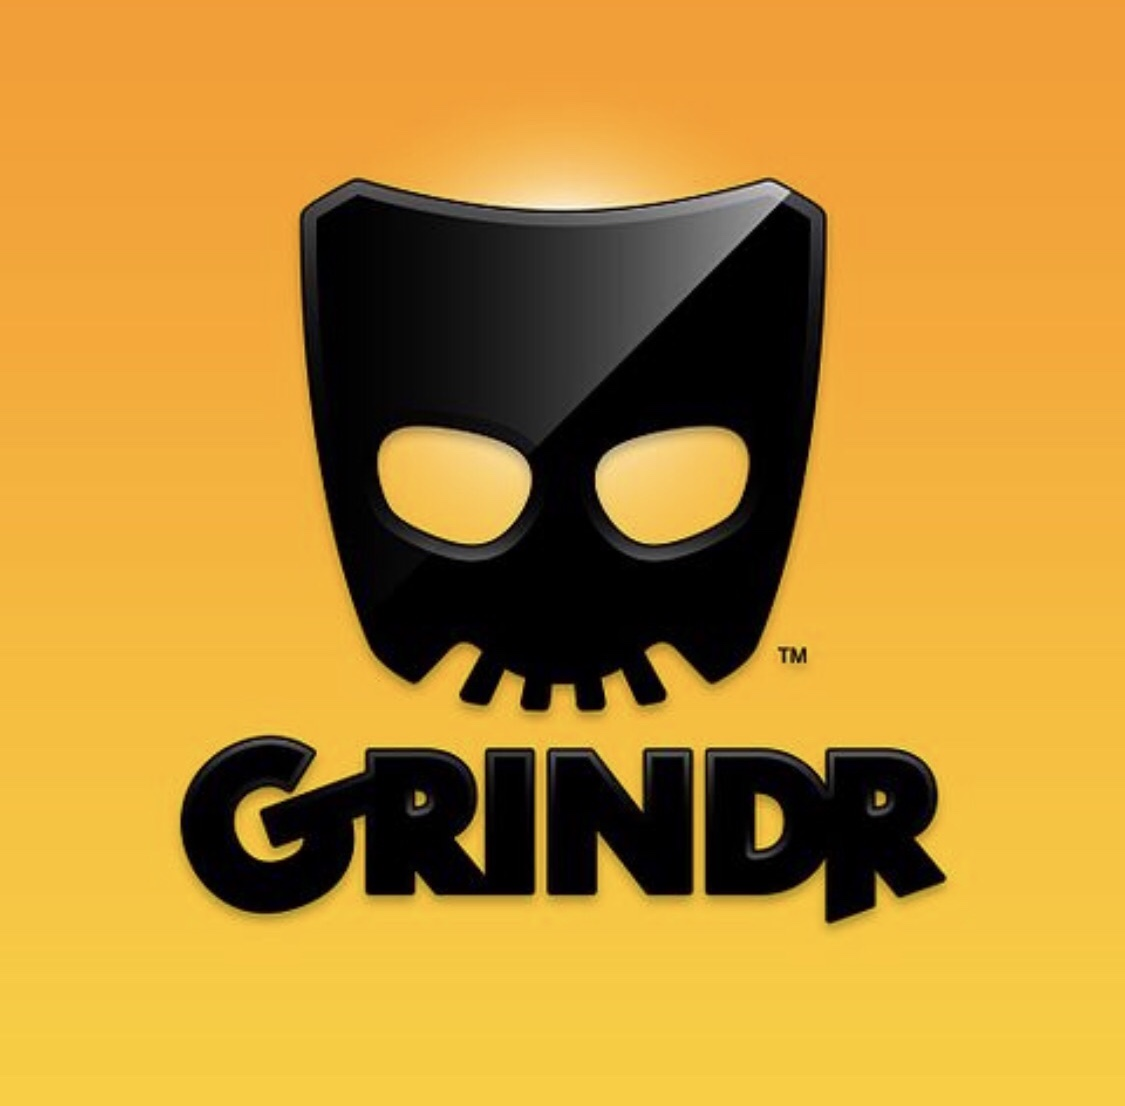 Grindr Admits It Shared HIV Status Of Users, Says It Will Stop Sharing Users' Private Information With Other Companies